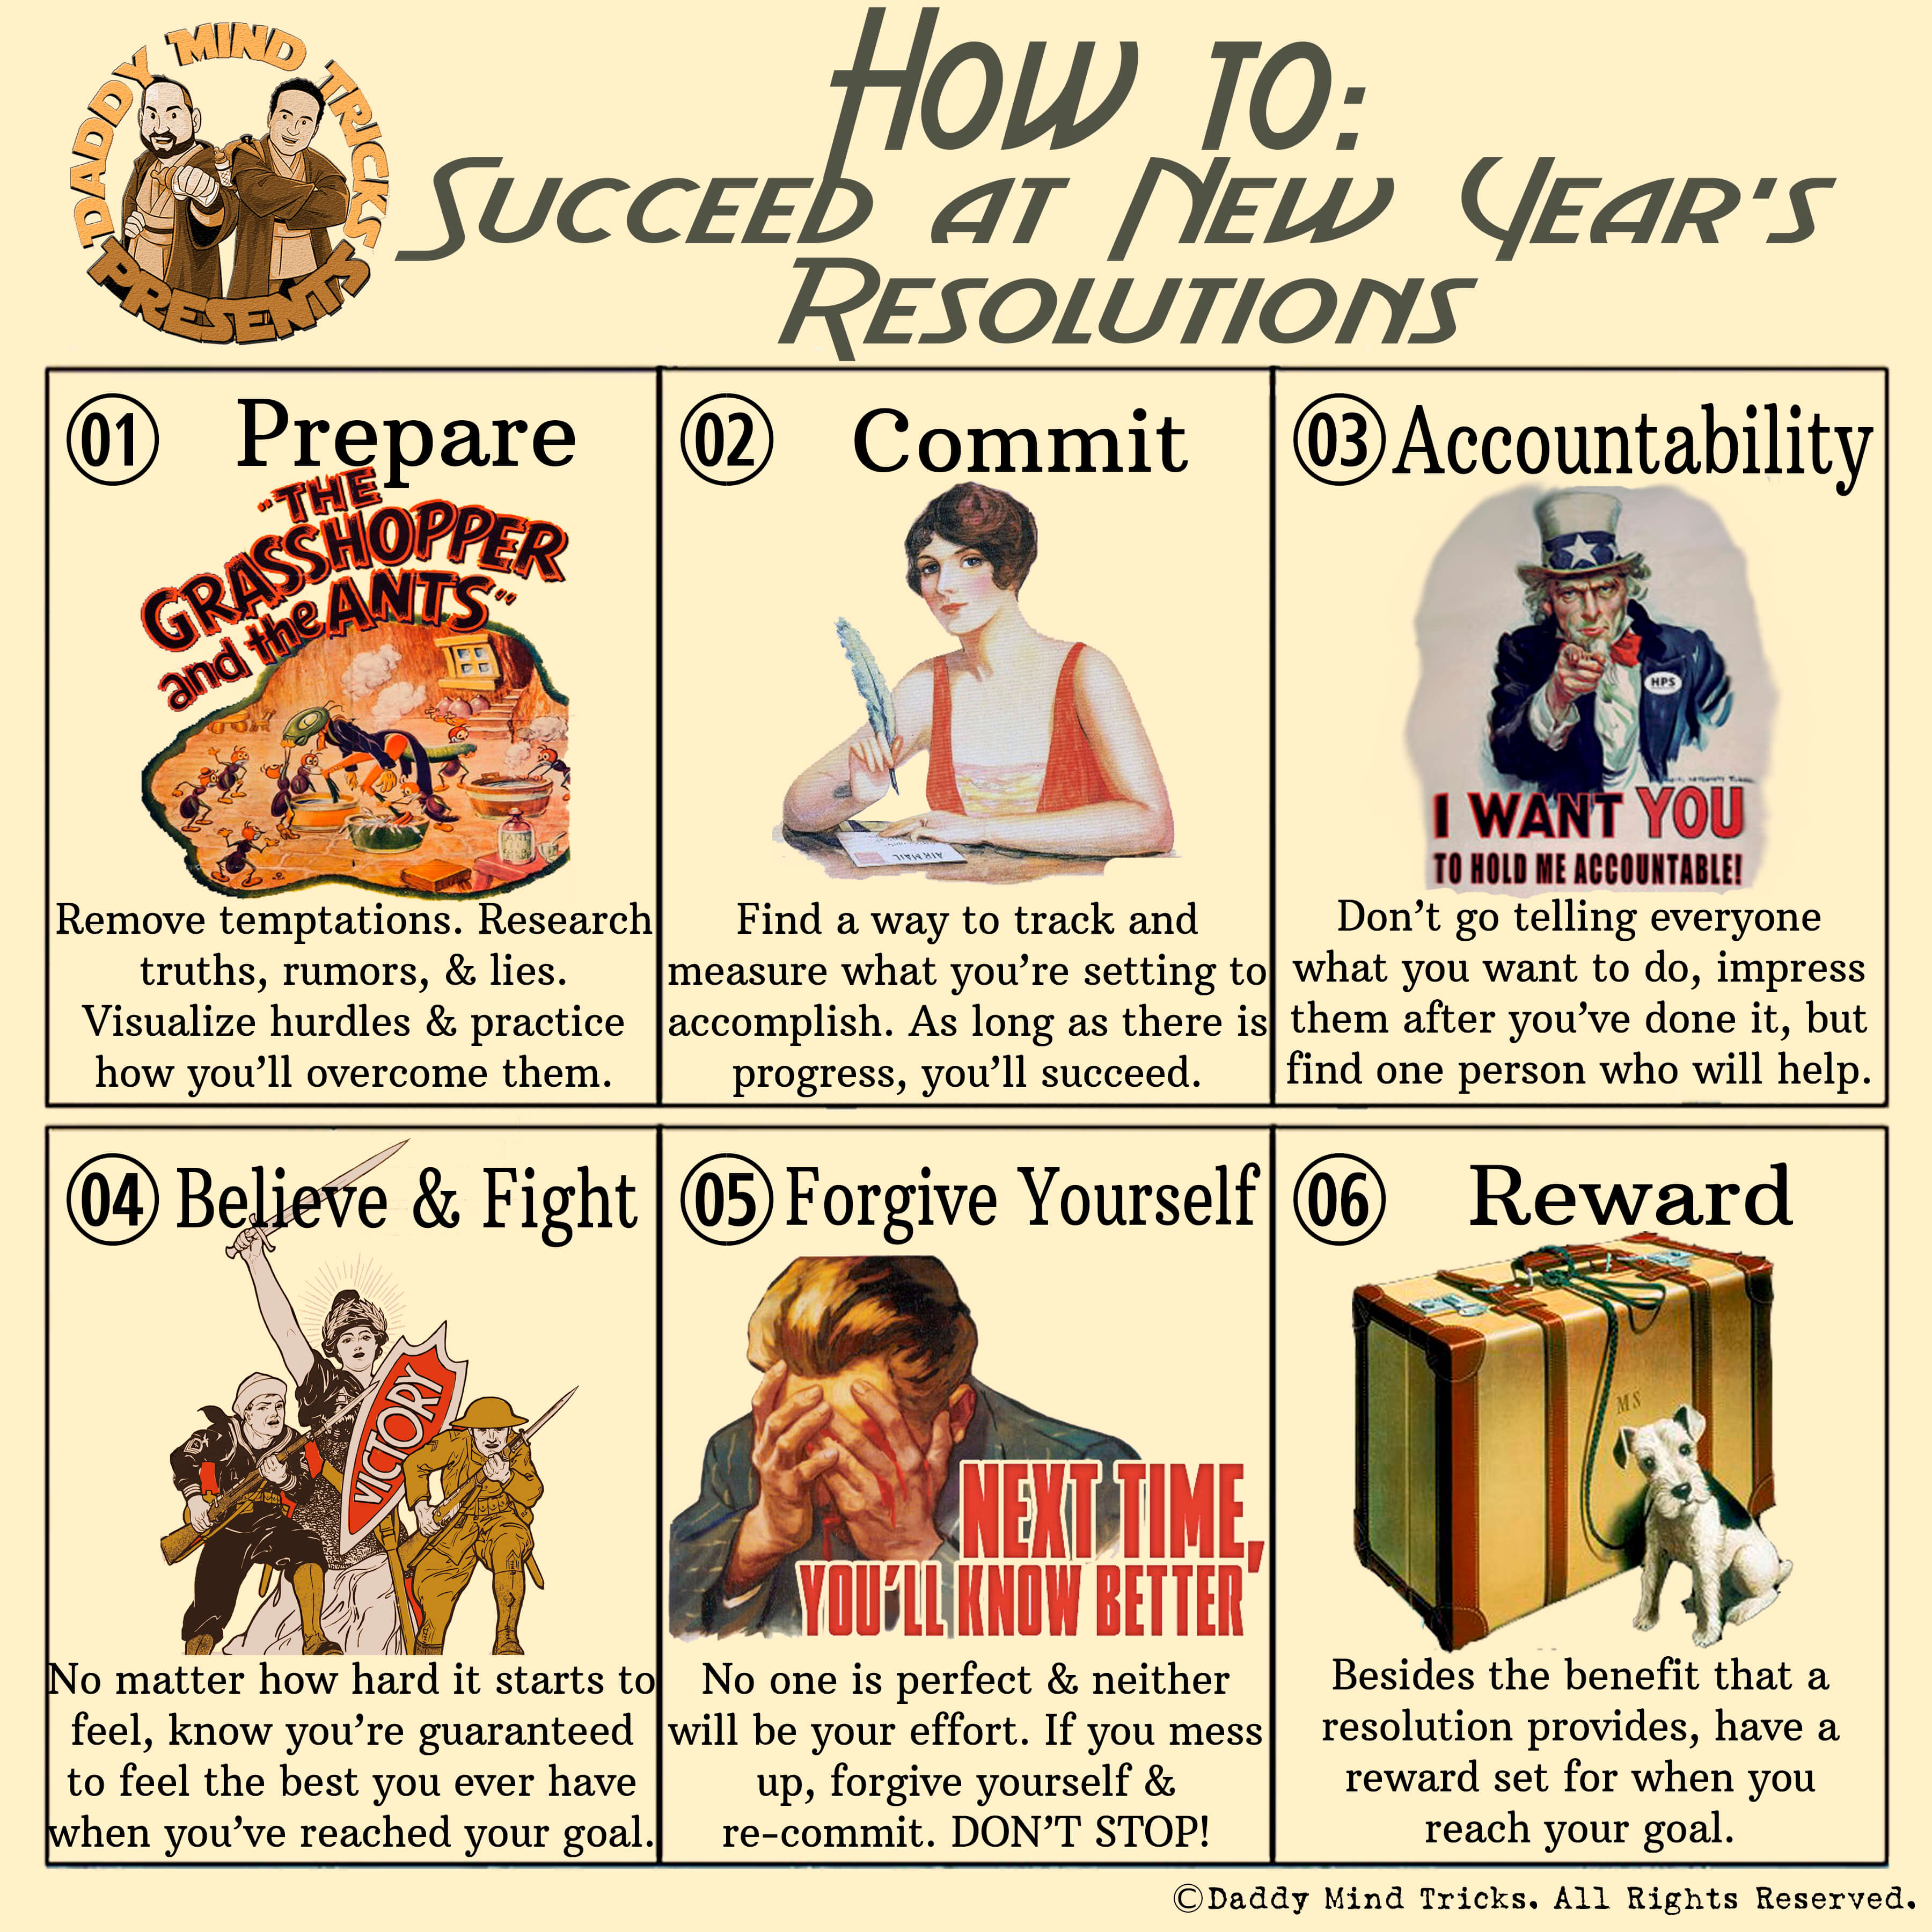 Succeed New Year's Resolutions